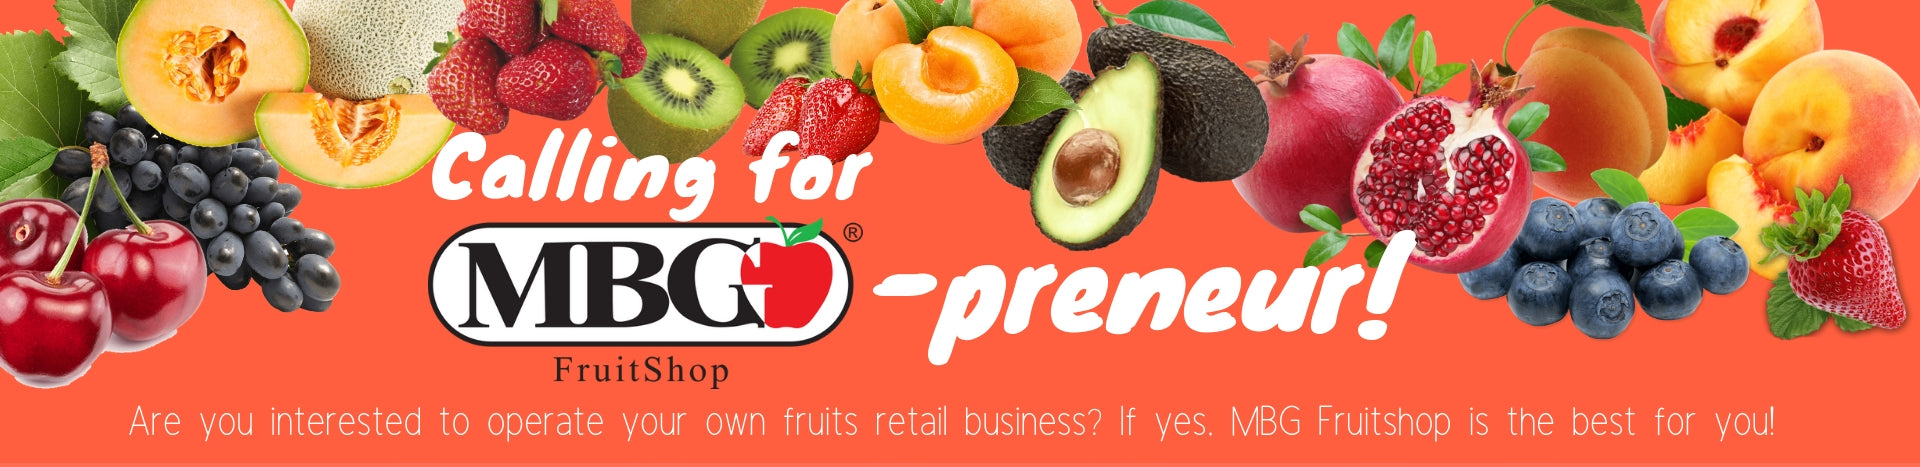 Are you interested to running your own fruits retails business? It yes, MBG Fruitshop is the best for you!